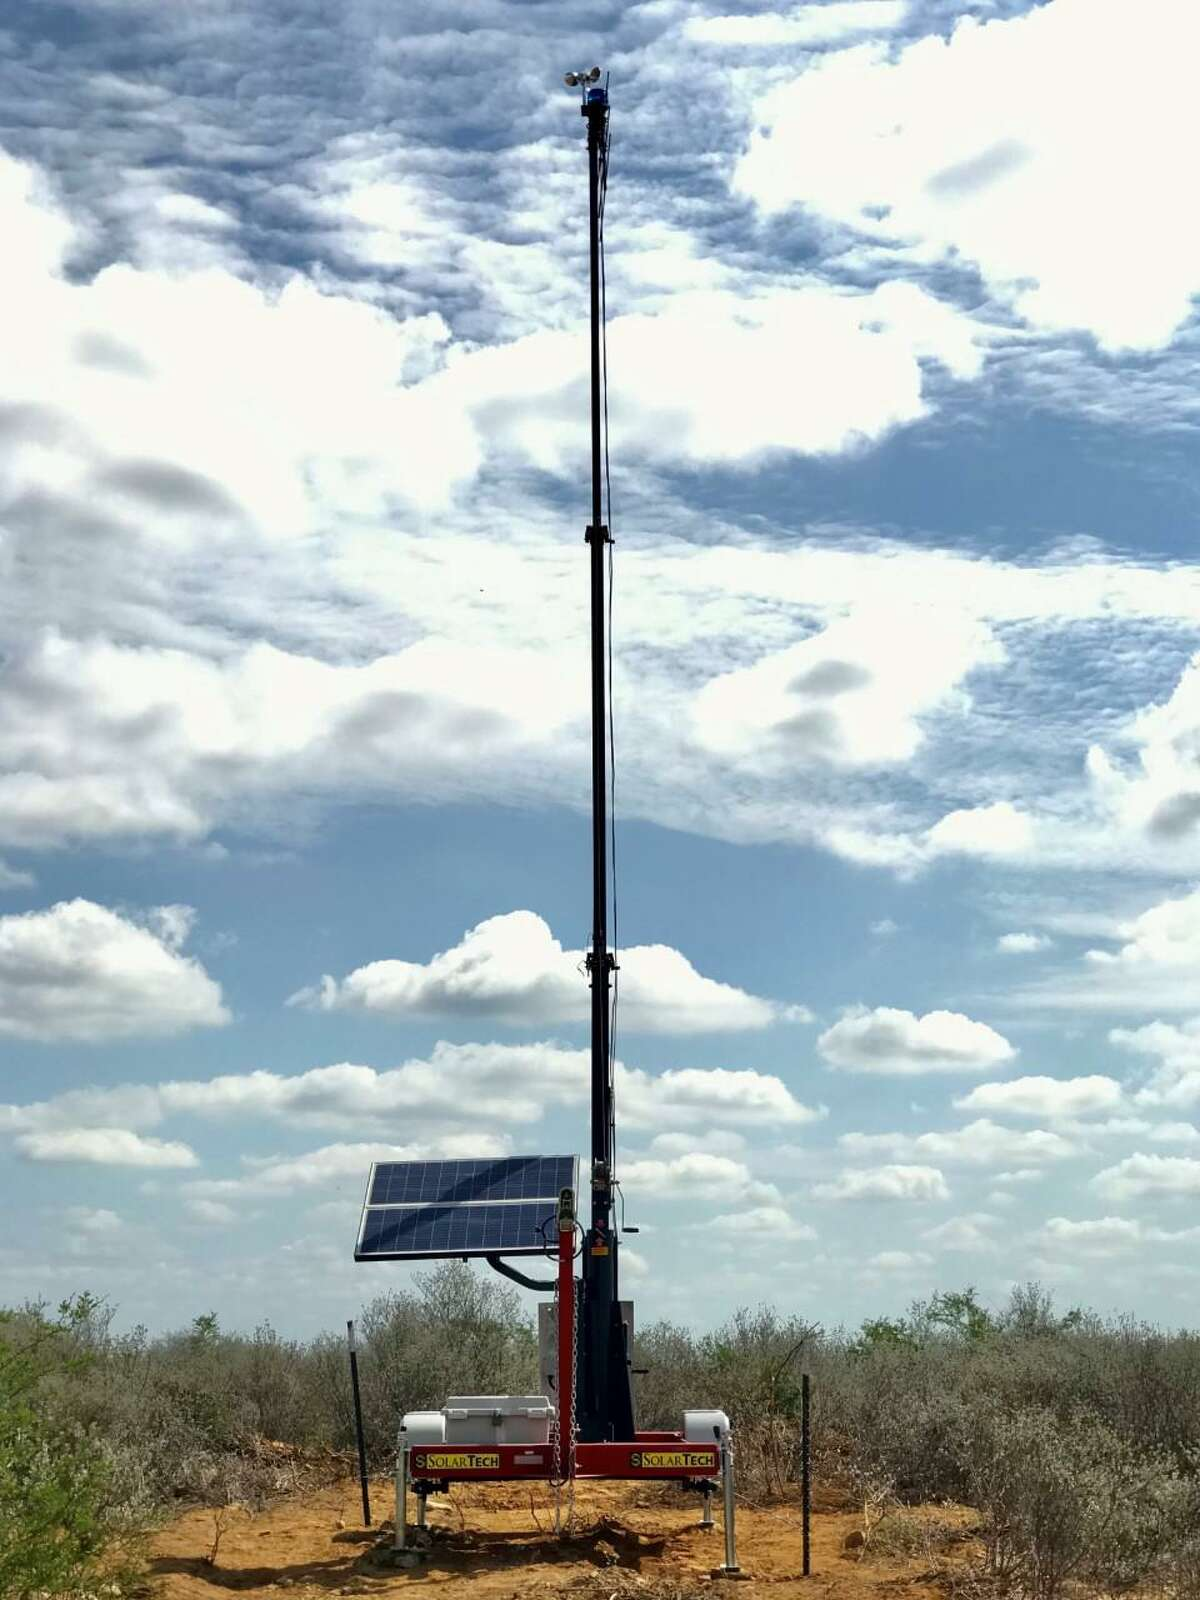 U.S. Border Patrol agents said mobile rescue beacons are designed to aid individuals in distress and are strategically placed in rural areas to reduce the loss of lives.